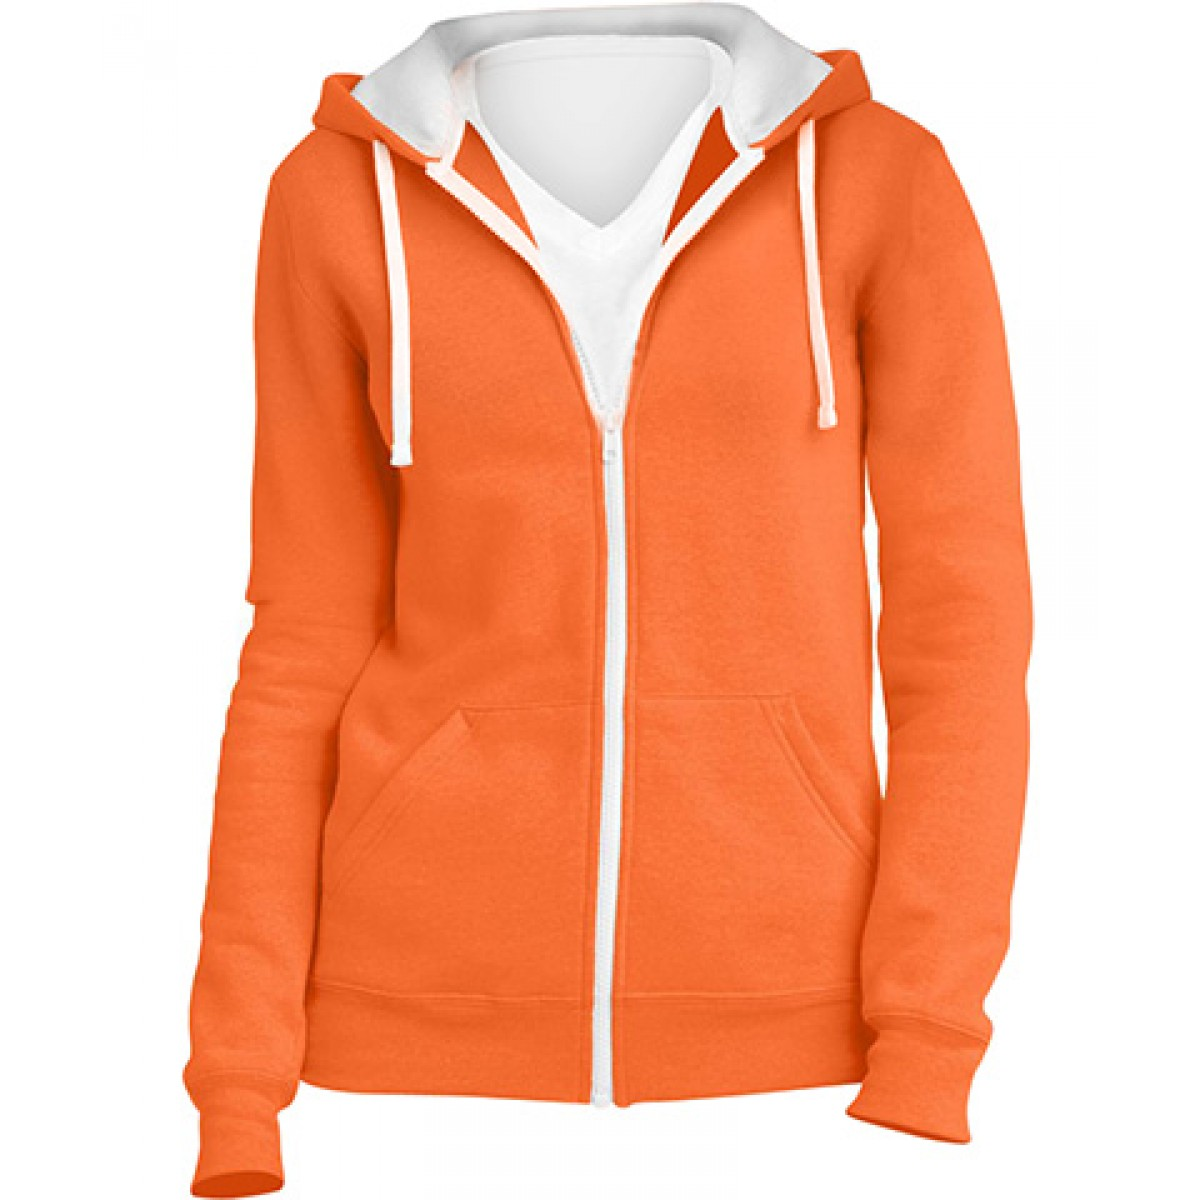 Juniors Full-Zip Hoodie-Neon Orange -M